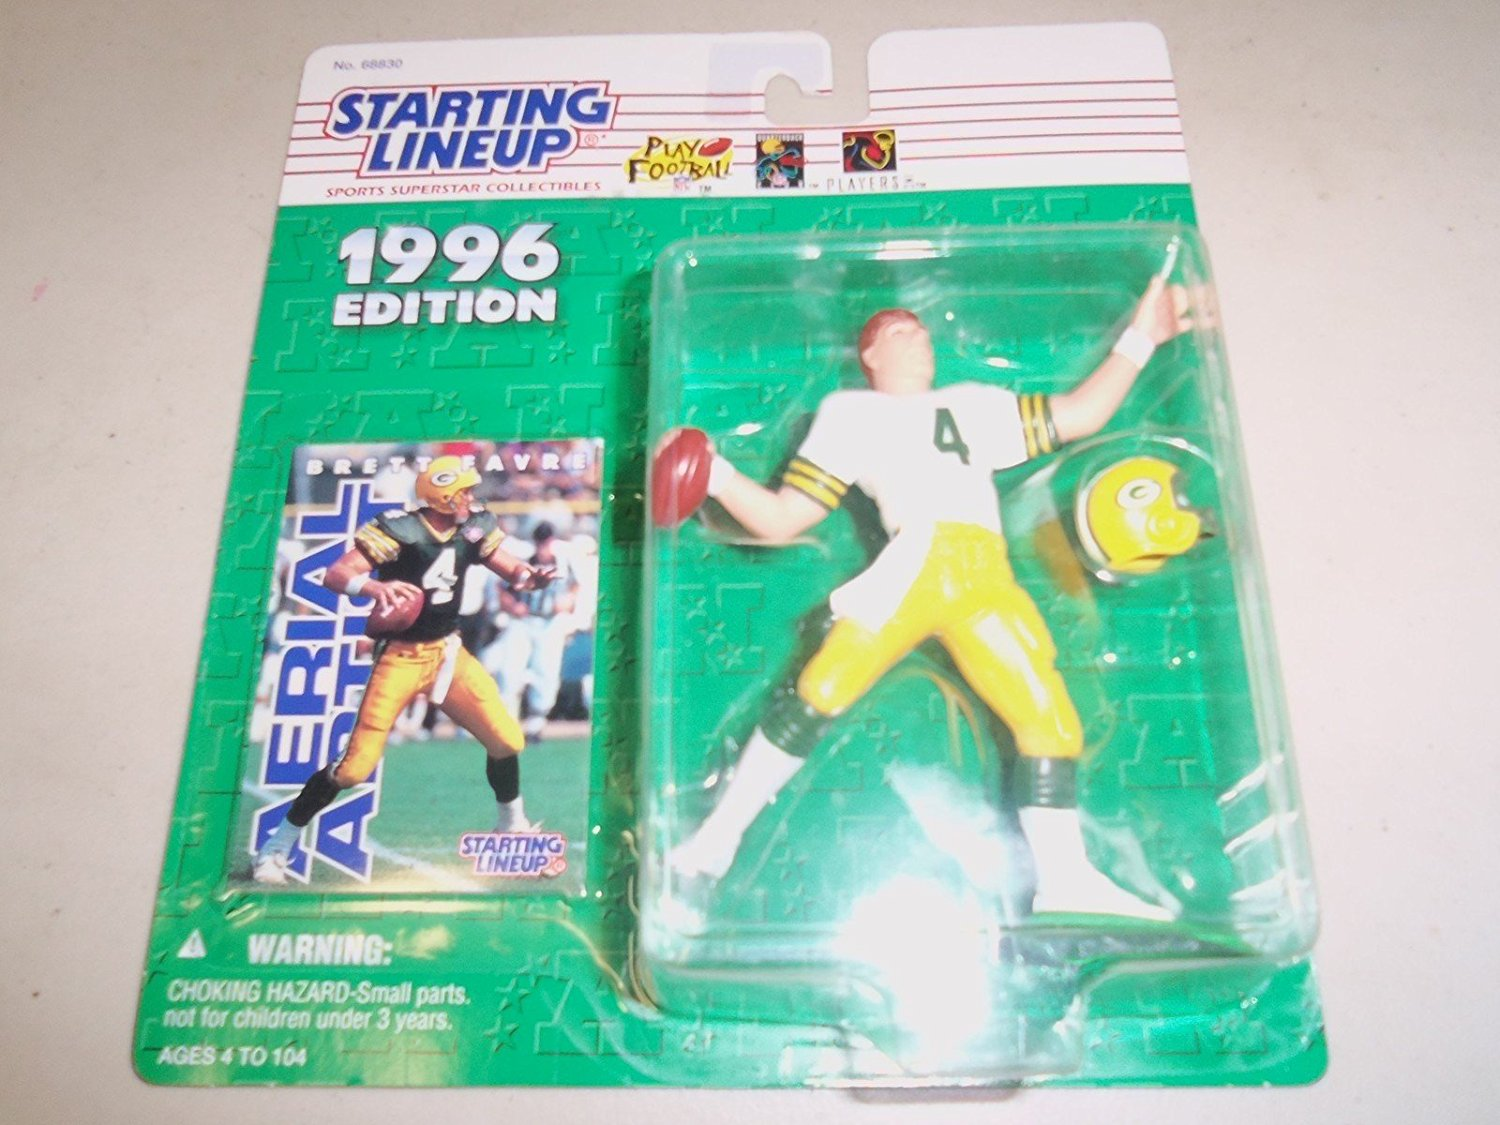 1996 NFL Starting Lineup - Brett Favre - Green Bay Packers